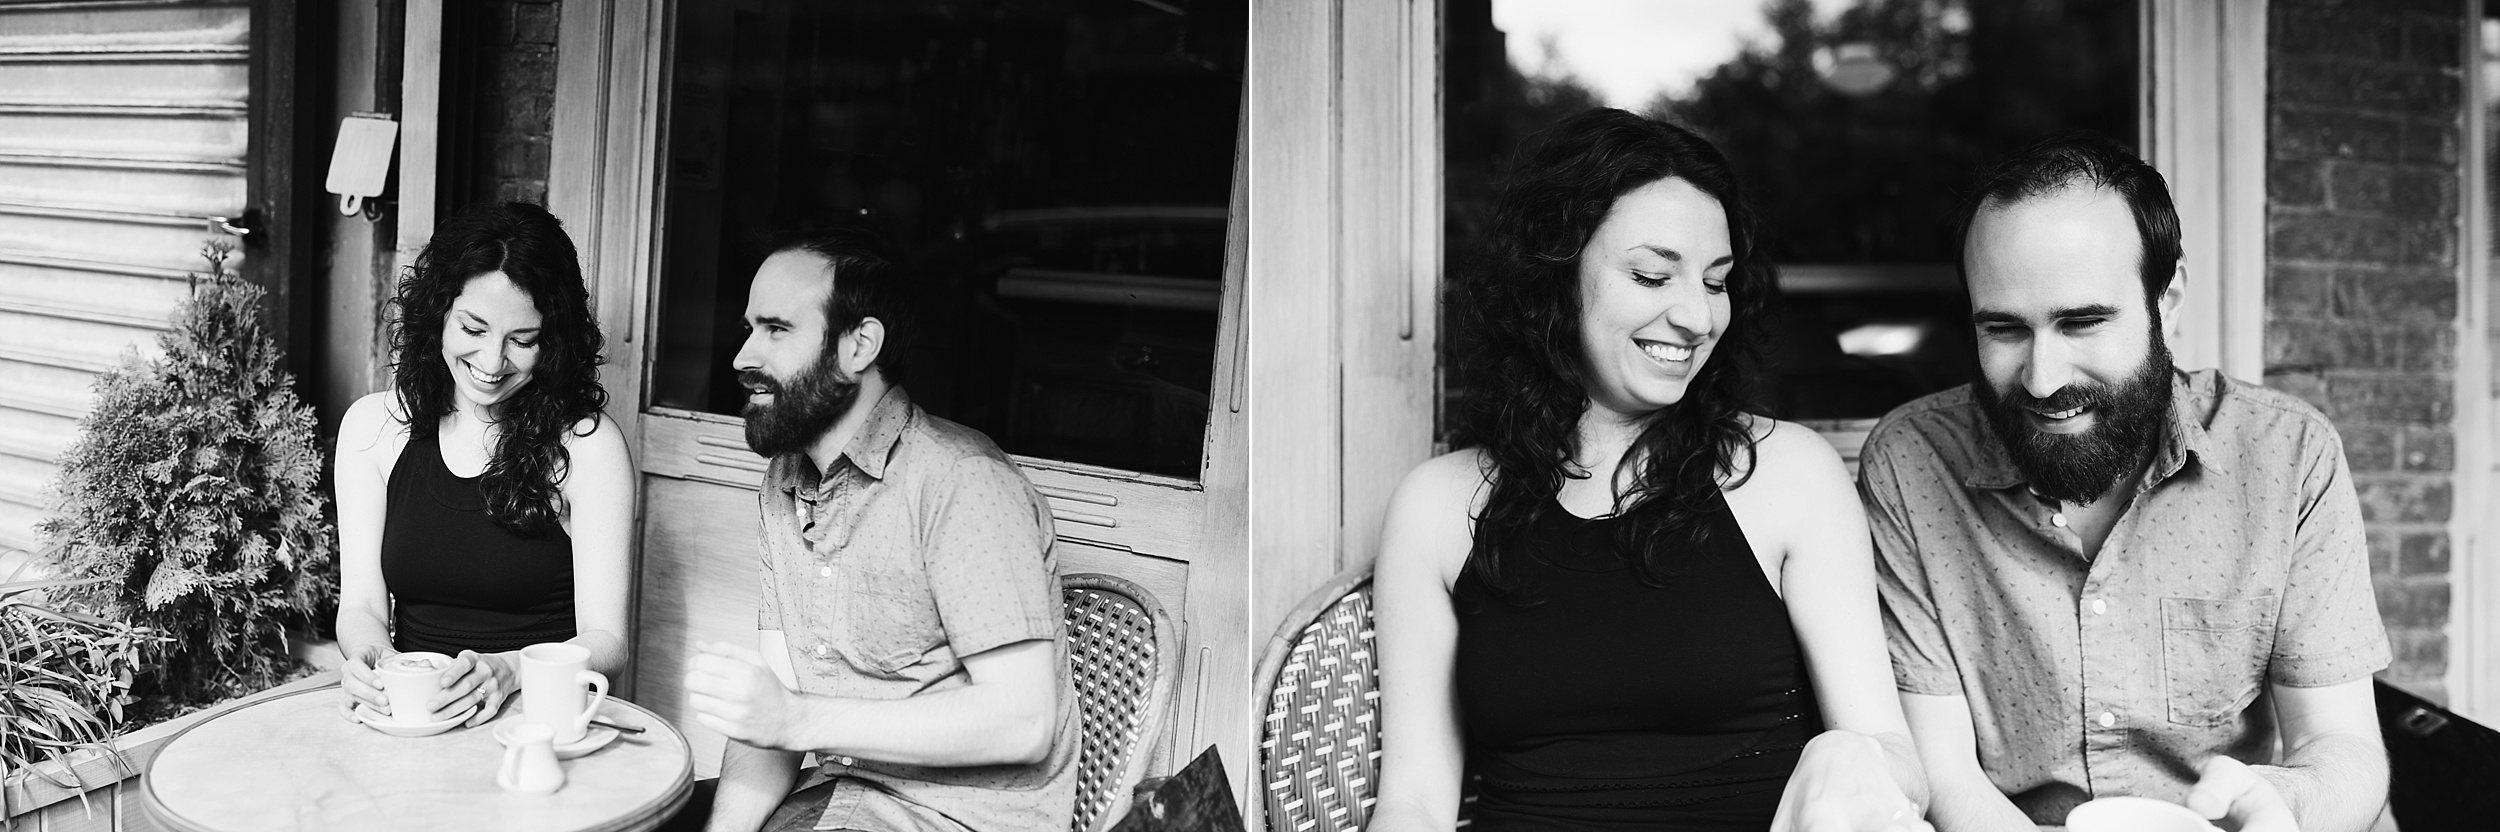 Allison-Sullivan-Brooklyn-Cobble-Hill-Engagement-Session_20.JPG